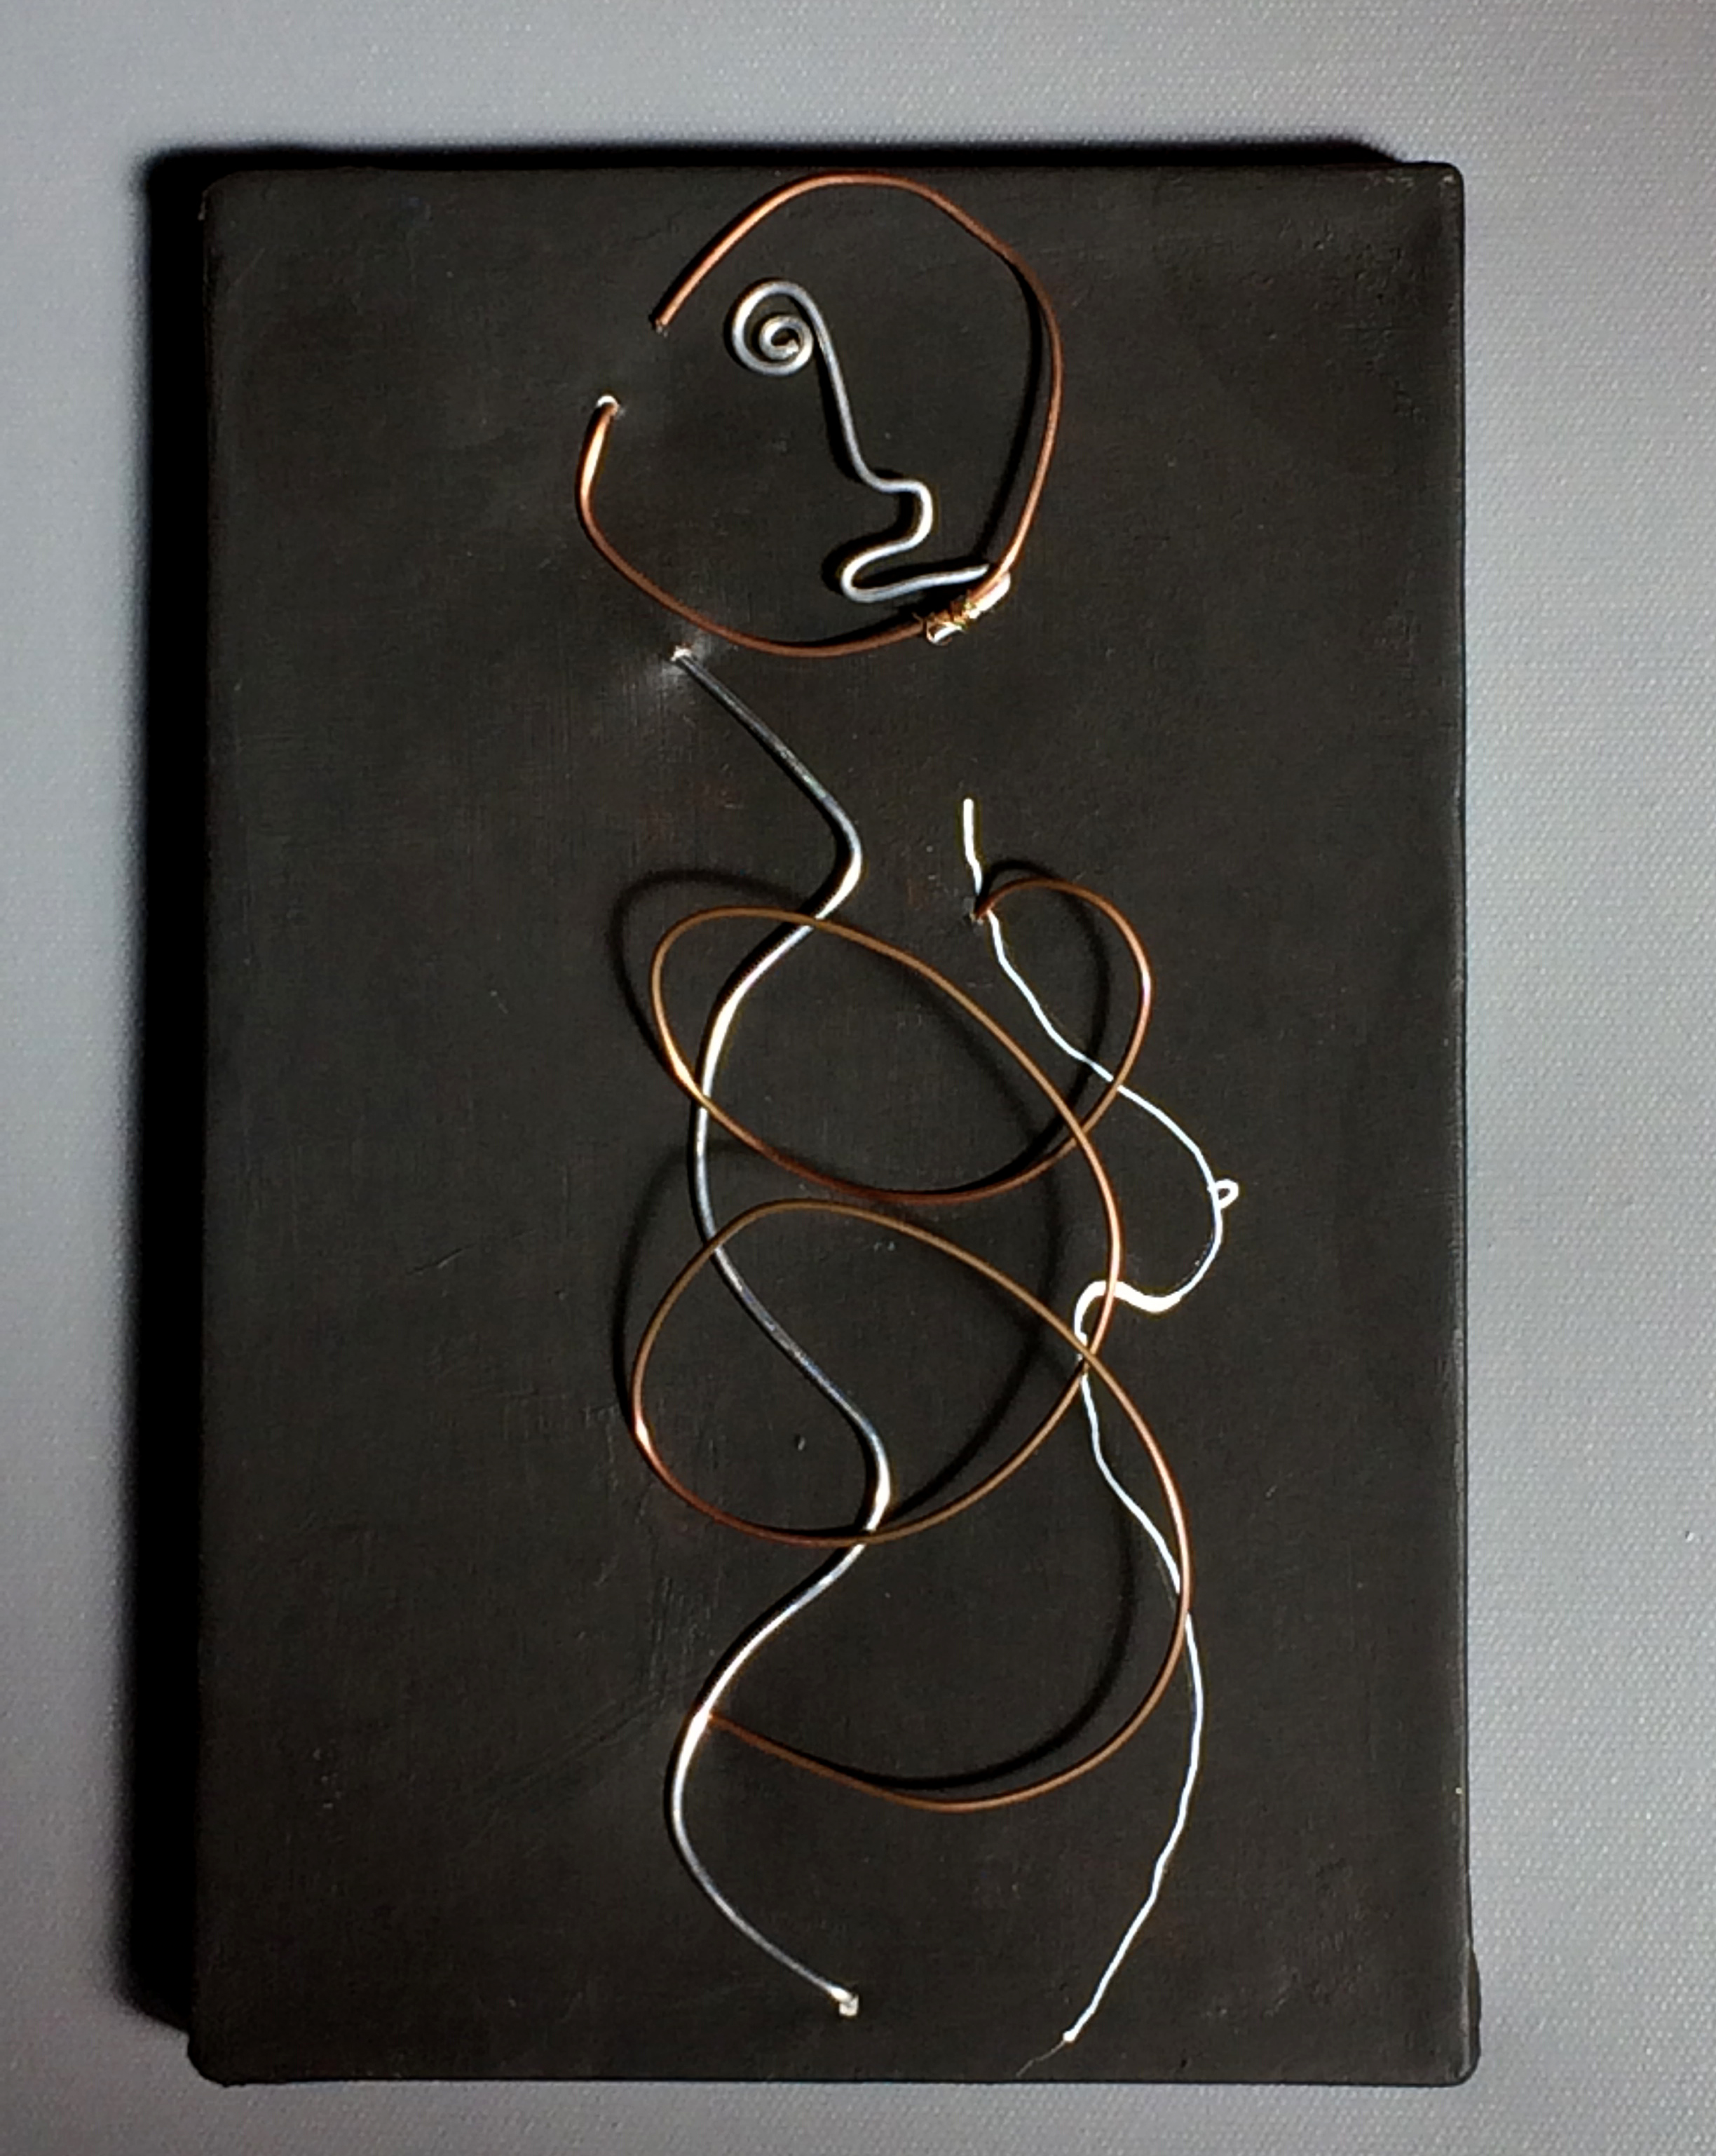 Wire Woman  (2013), 12 x 12 in, white acrylic ink, copper wire on canvas